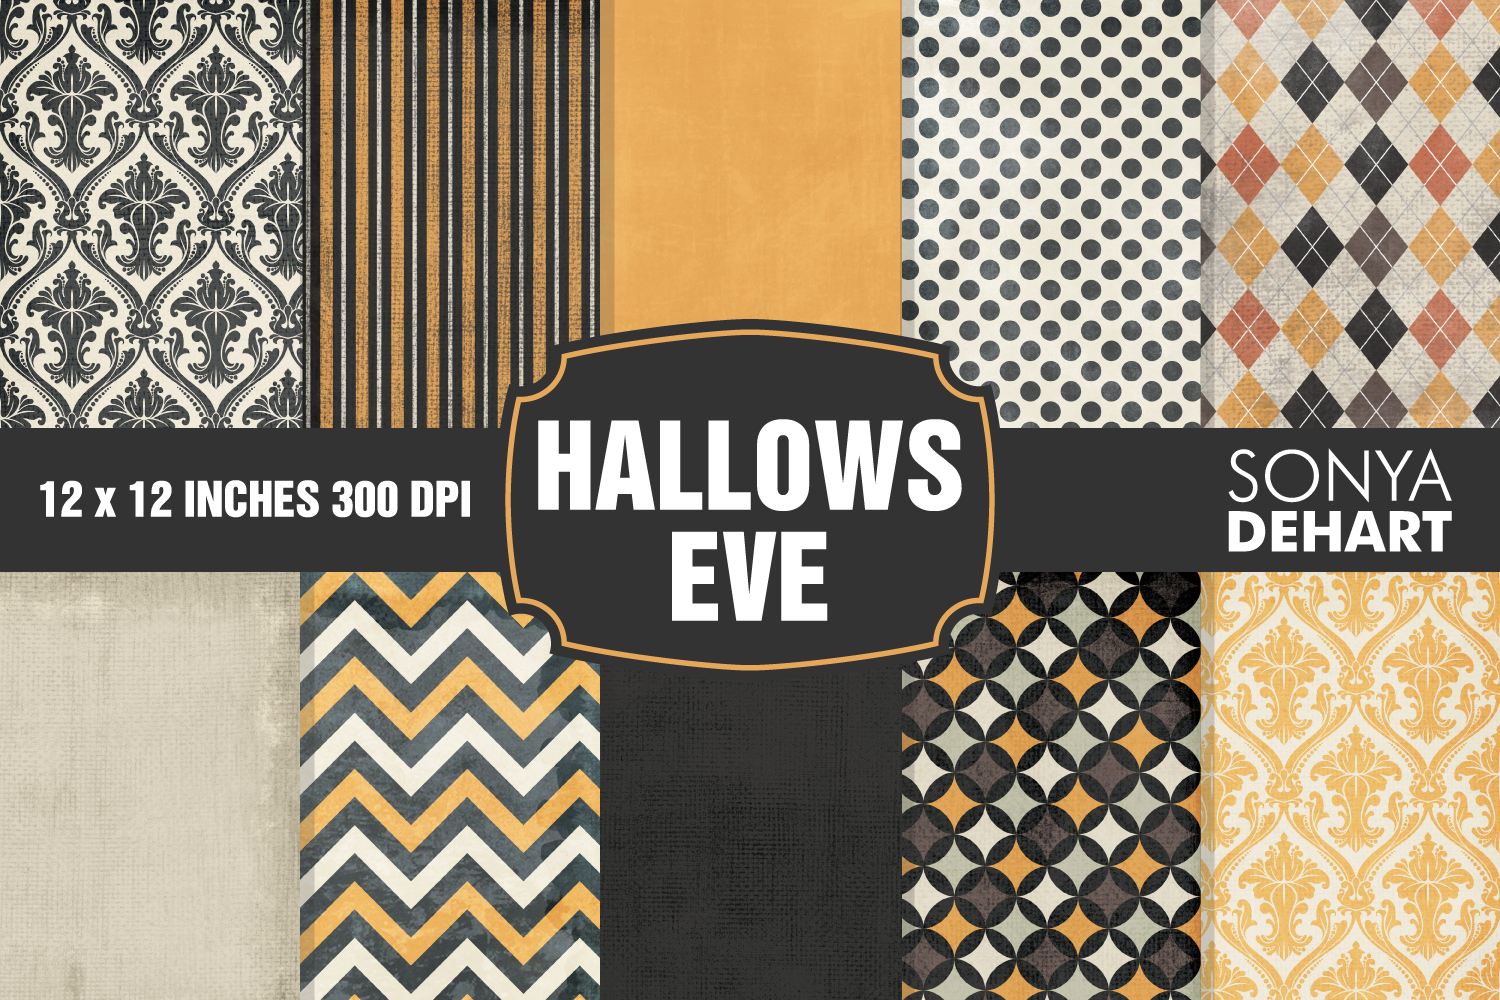 Halloween Hallows Eve Digital Paper Pattern Pack example image 1